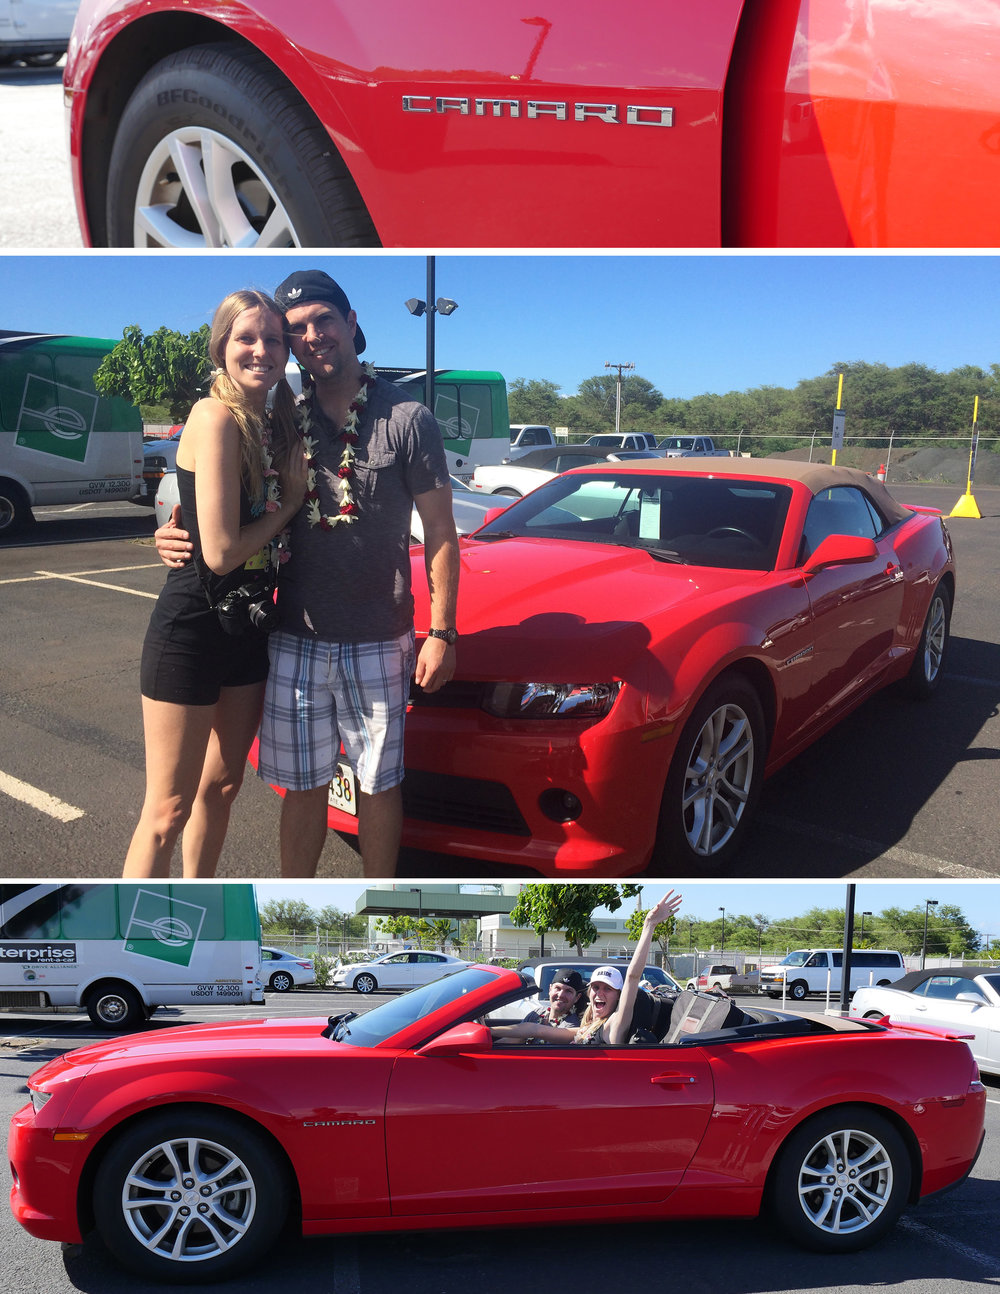 Surprising me with the Camero rental car!